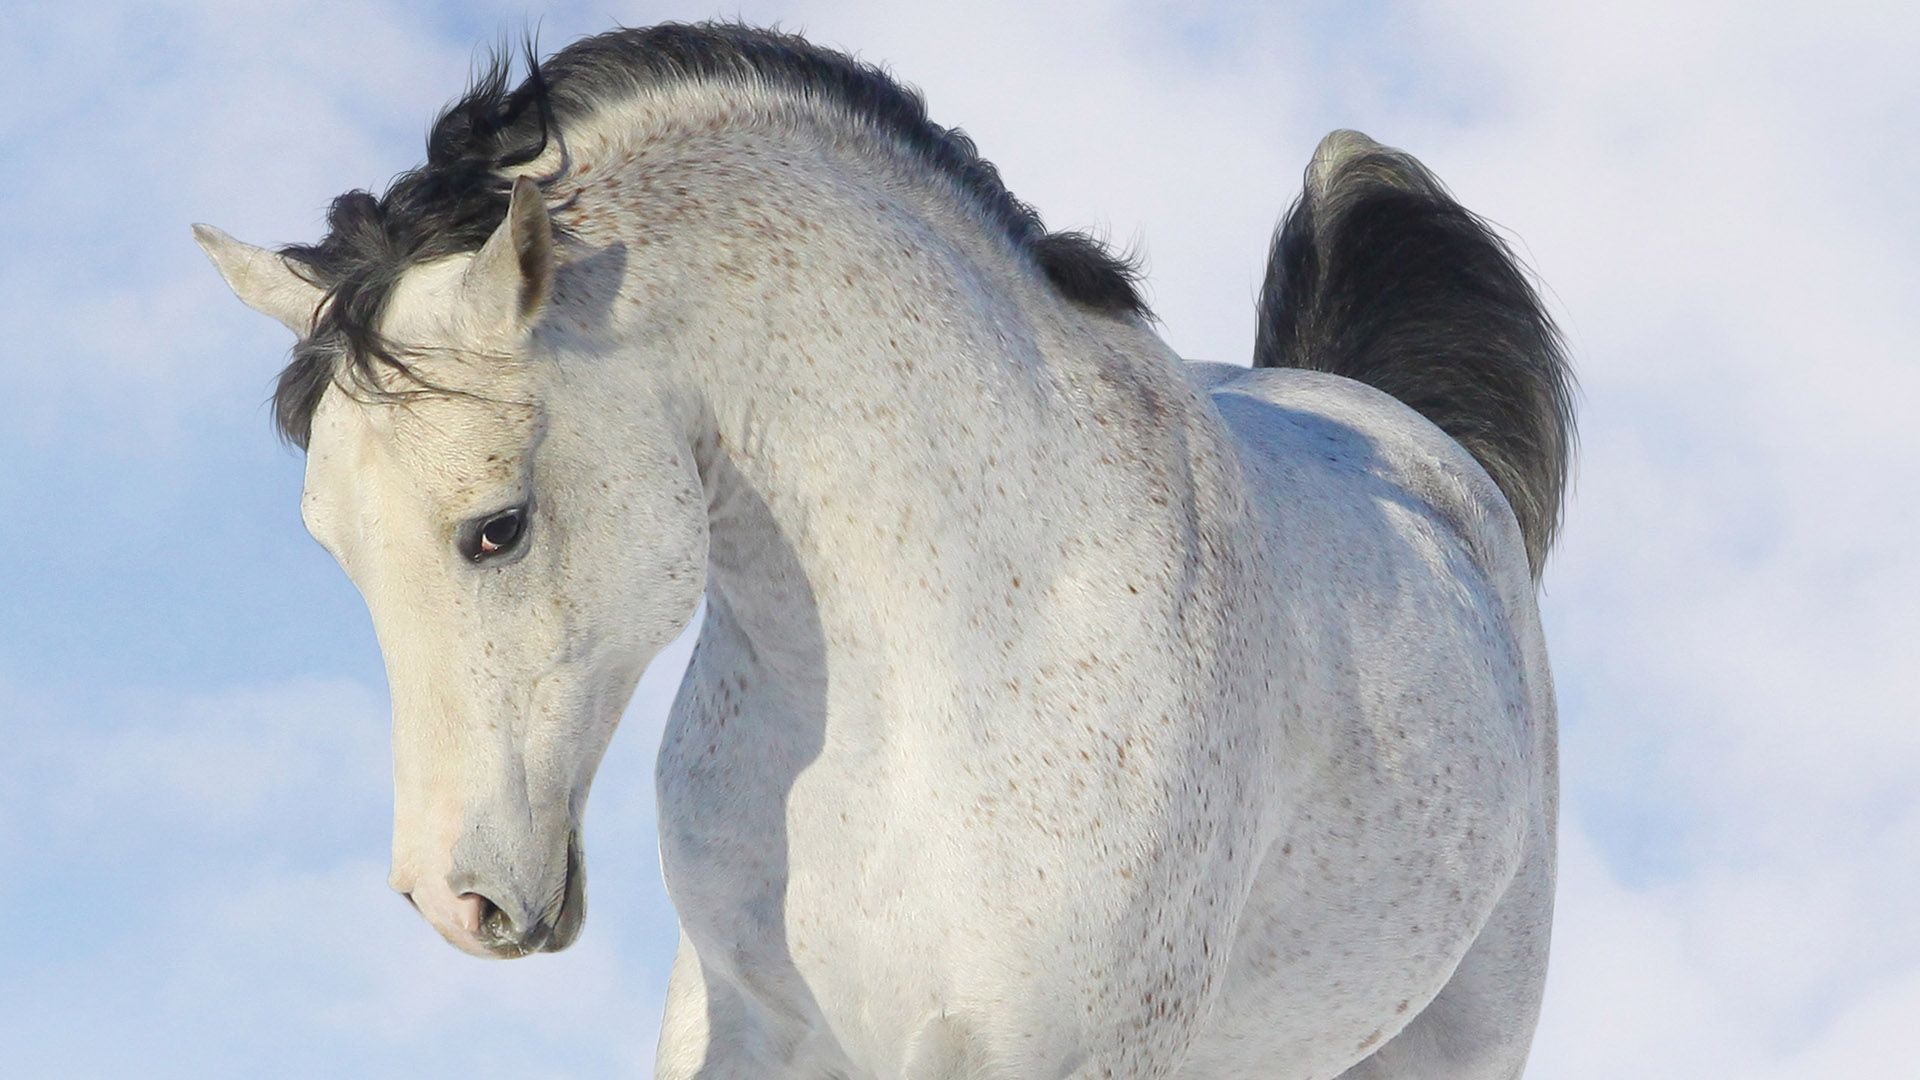 Amazing Wallpaper Horse Snow - 73774be45b01ab238f8d85aafefb66df  Collection_59871.jpg